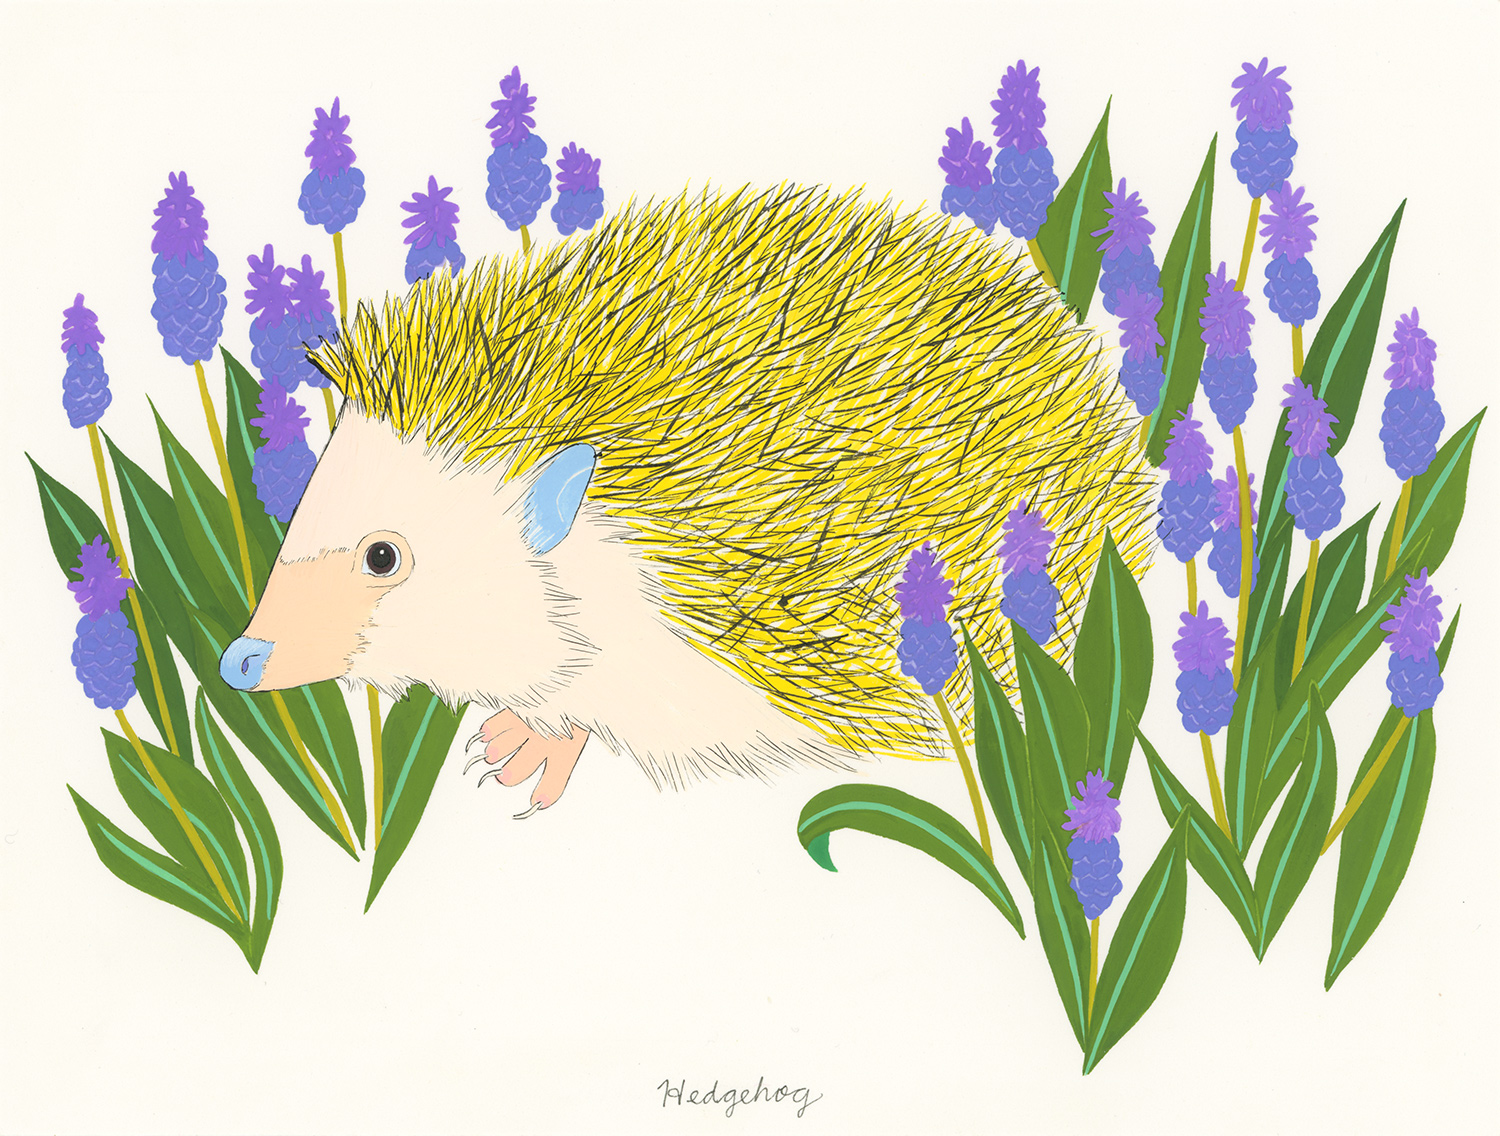 Hedgehog (for the blonde hedgehogs of Alderney)